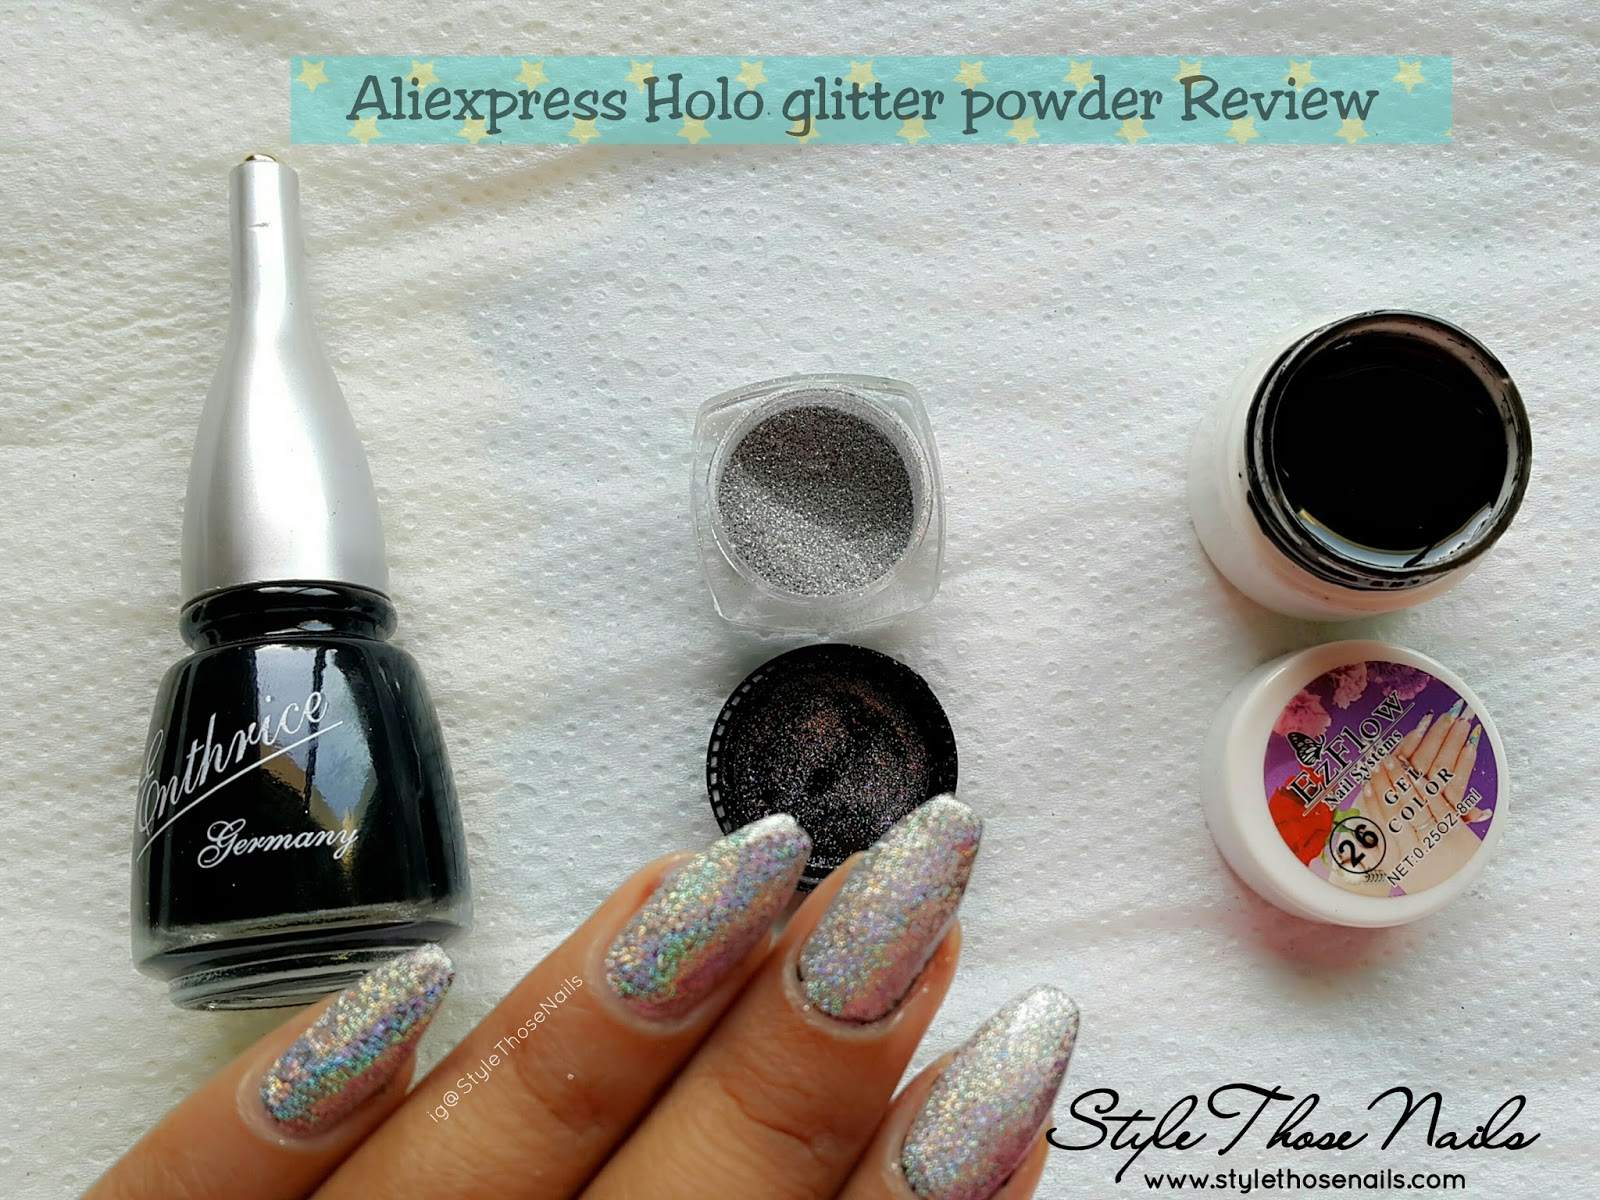 Today I Am Sharing A Review Comparison Post Of Holo Glitter Powder Recently Purchased From Aliexpress This Product Was Described As Laser